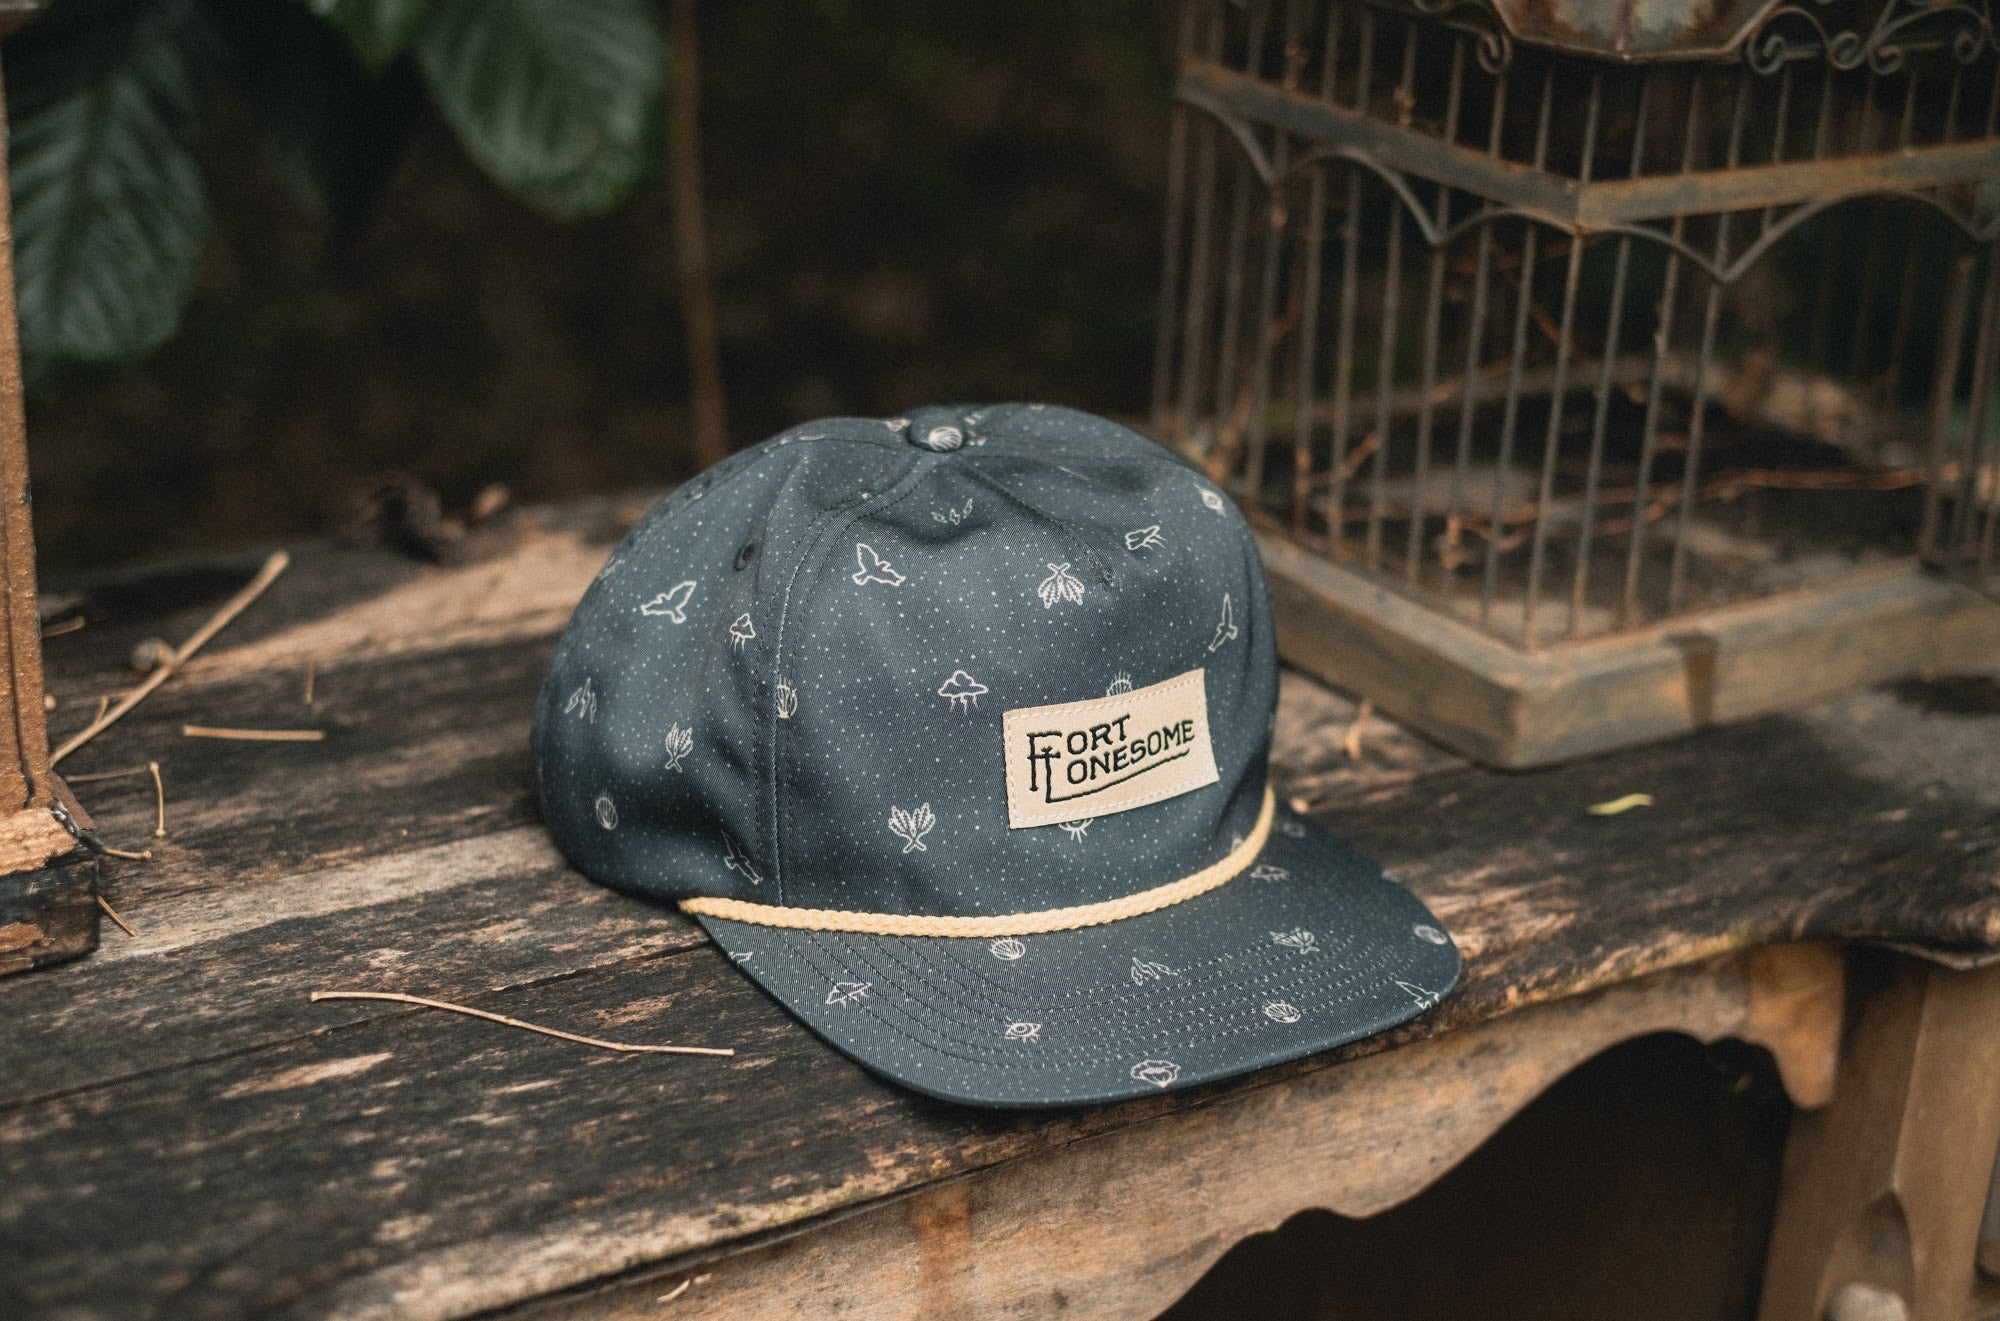 Ft Lonesome x Howler Bros SnapBack Cap